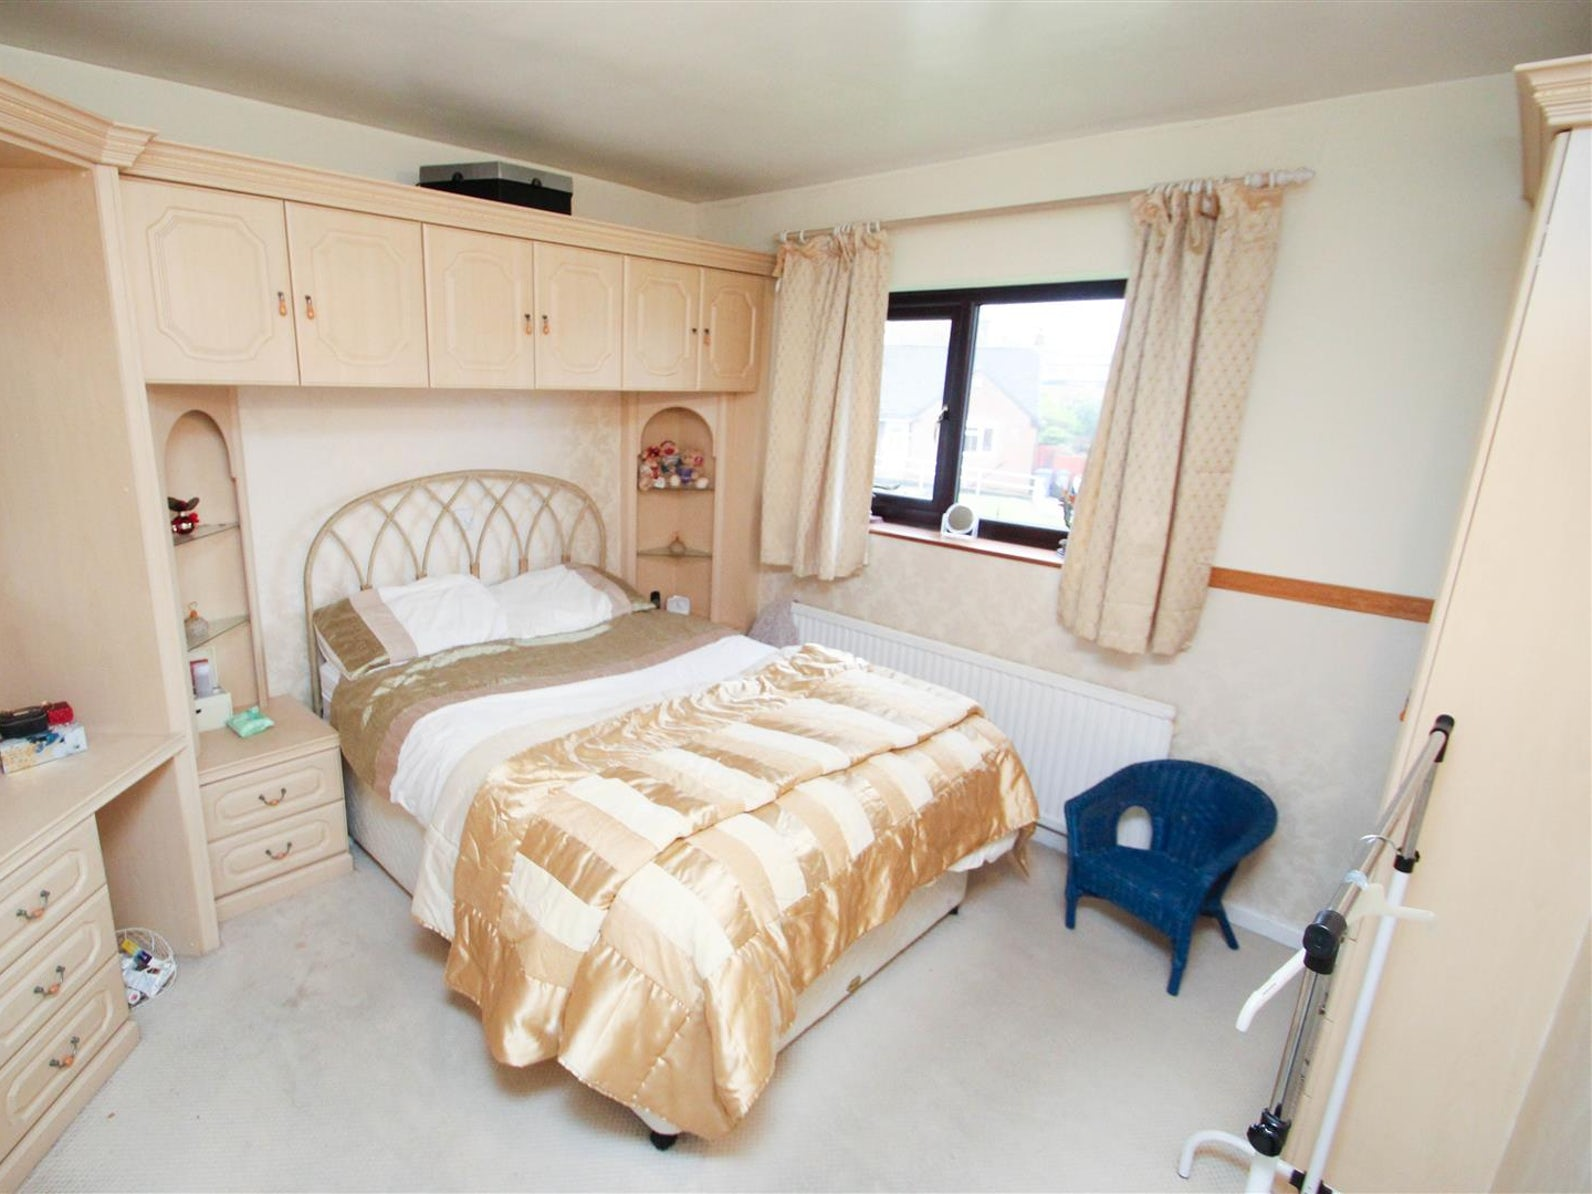 3 Bedroom Property For Sale In Stoke On Trent Princess Drive 130 000